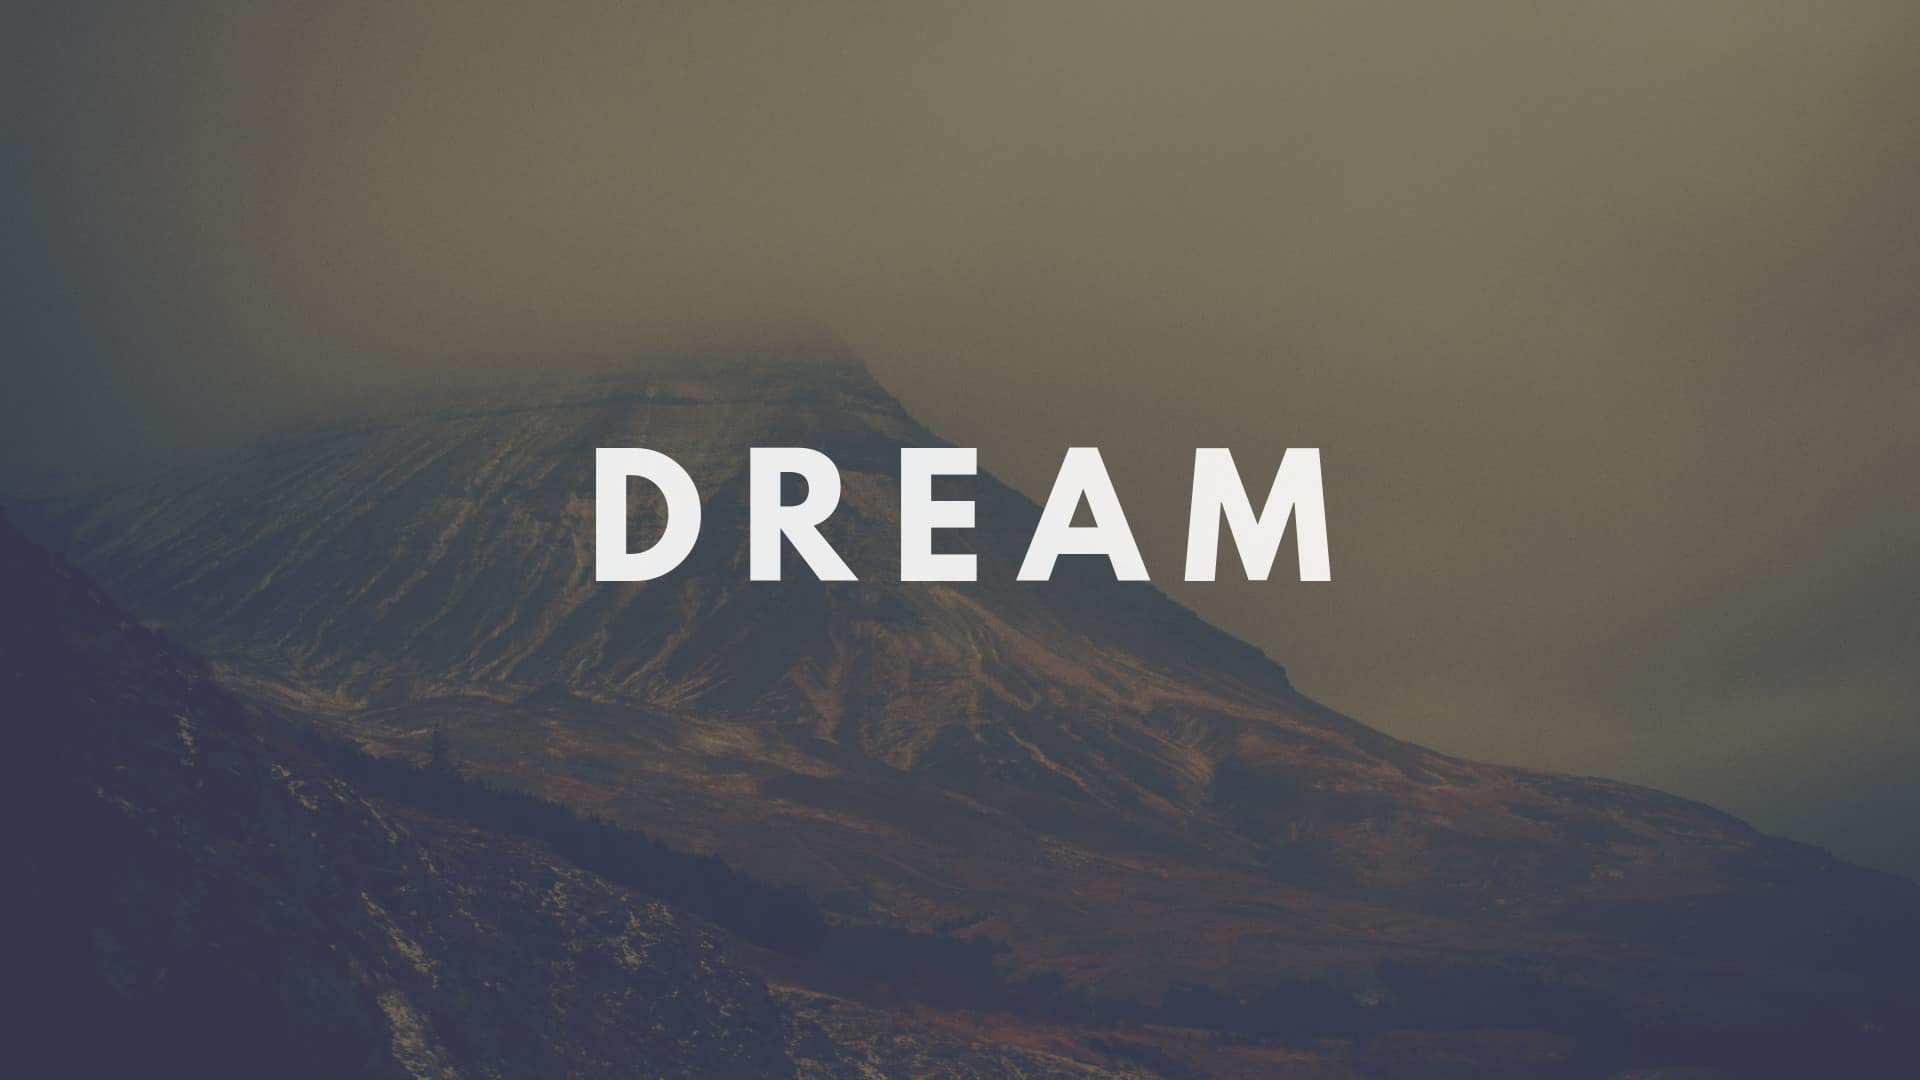 Dream graphic